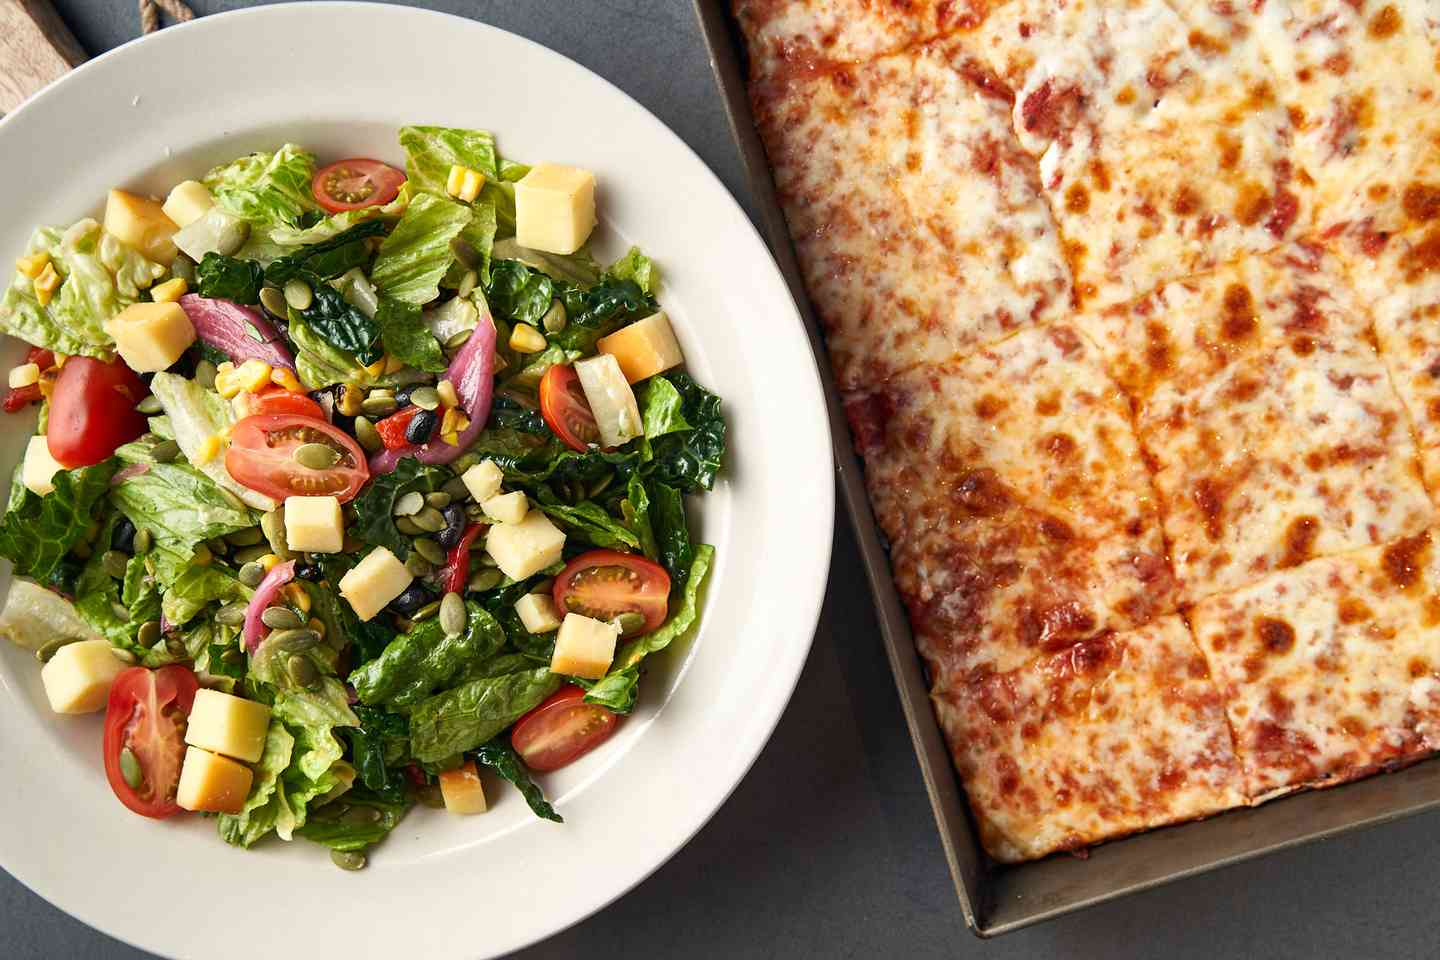 Black Iron Pizza & Salad